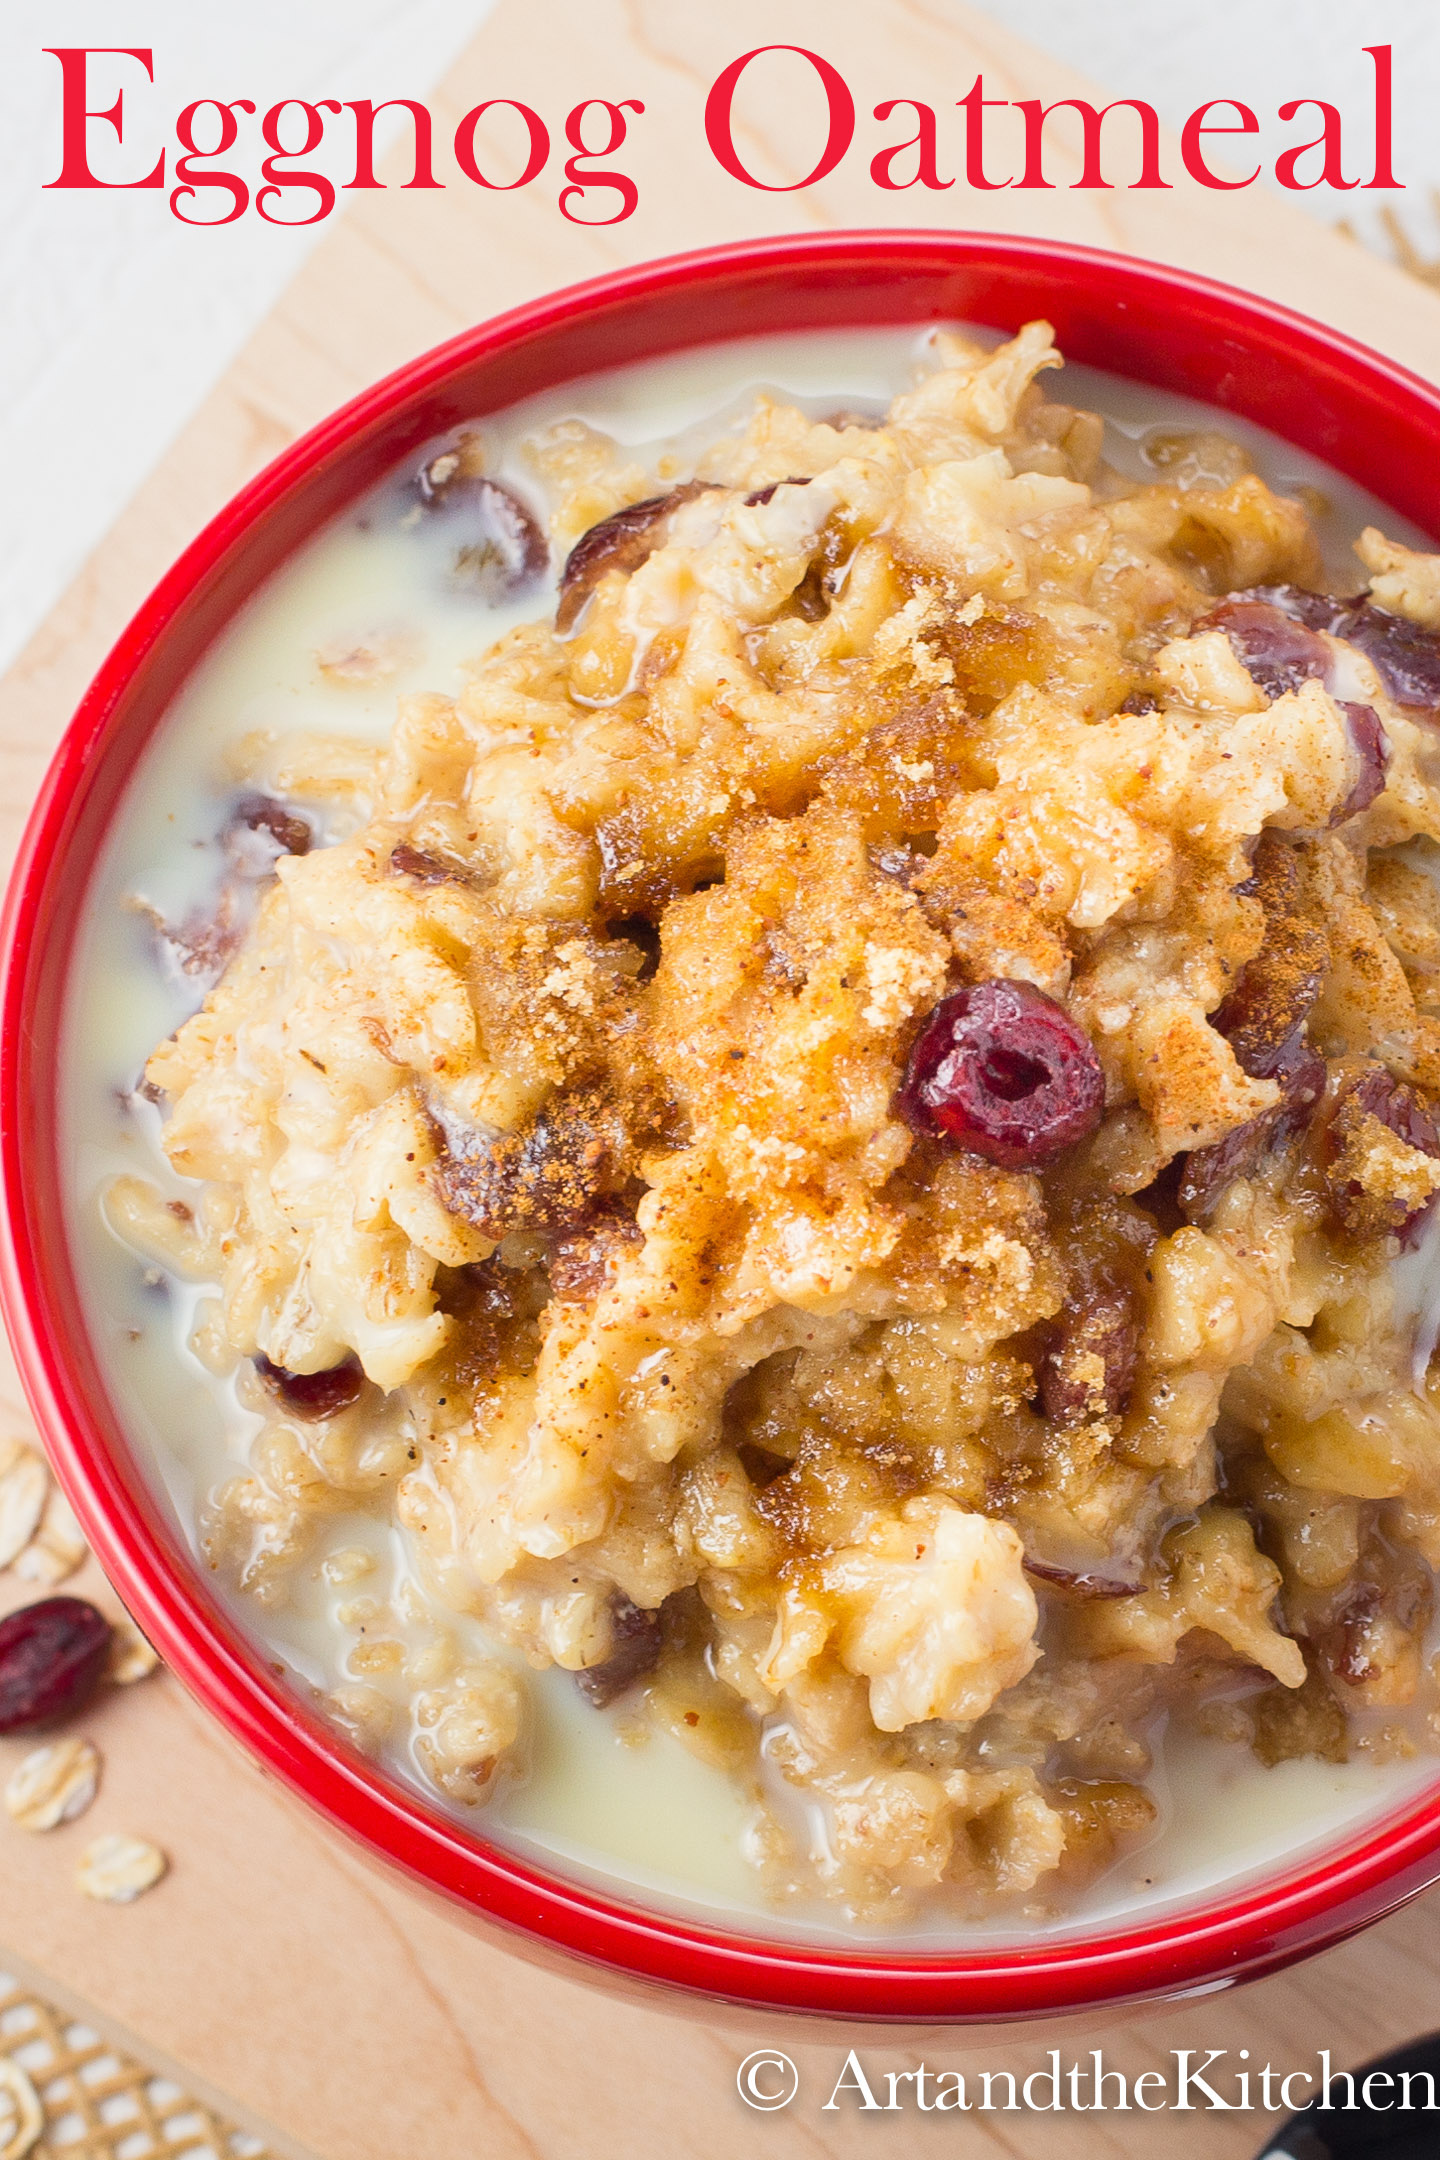 Oatmeal made with eggnog and cranberries